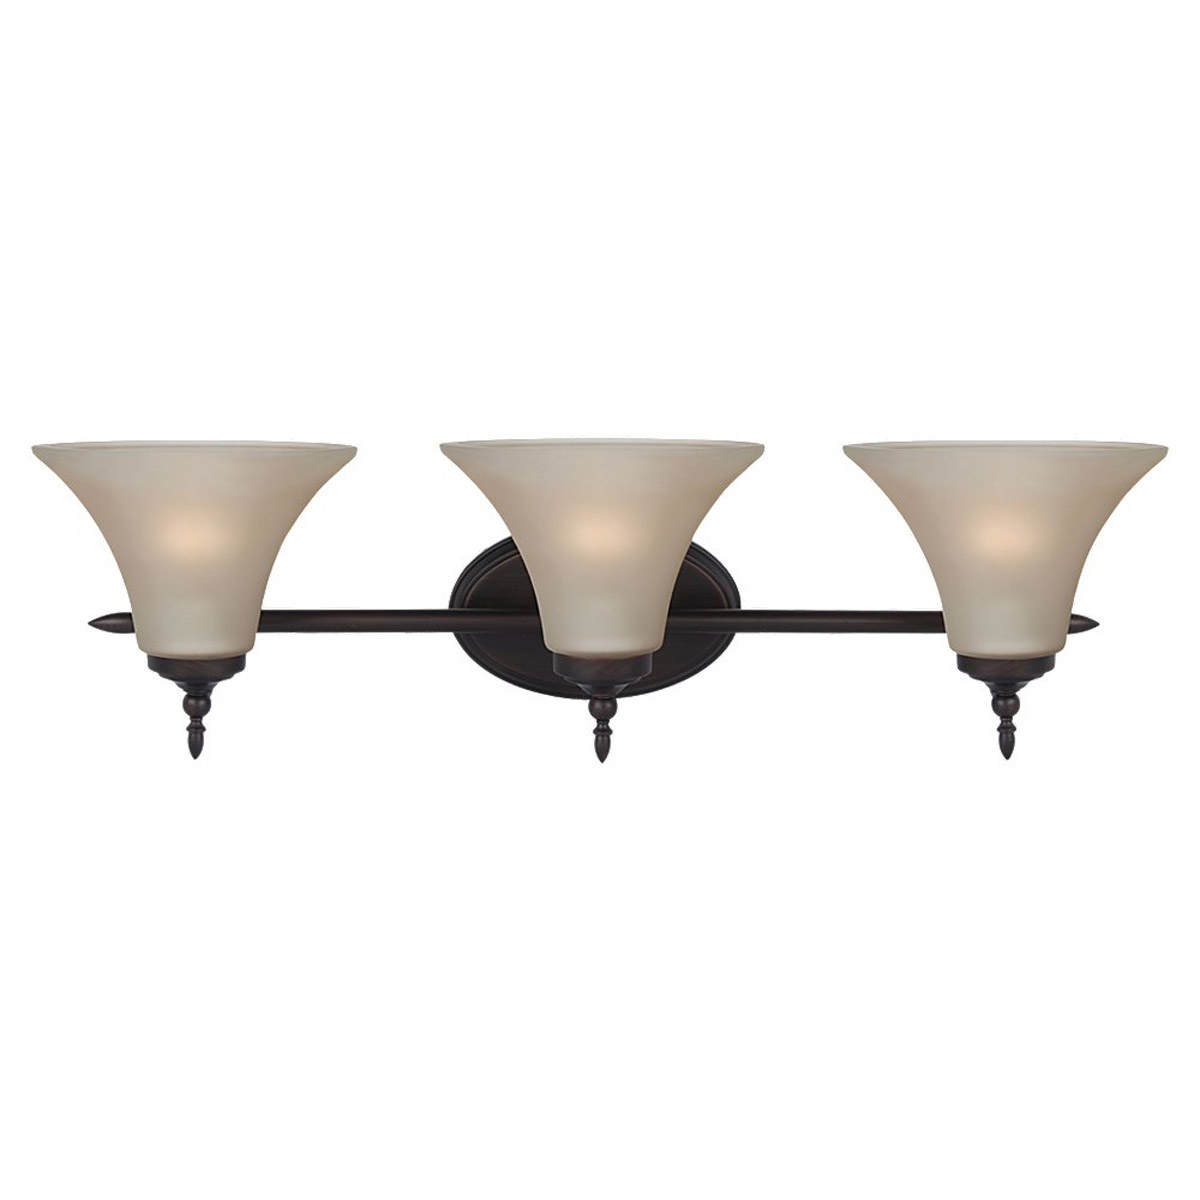 Sea Gull Lighting Montreal 3 Light Bath Vanity in Burnt Sienna 41182BLE-710 photo